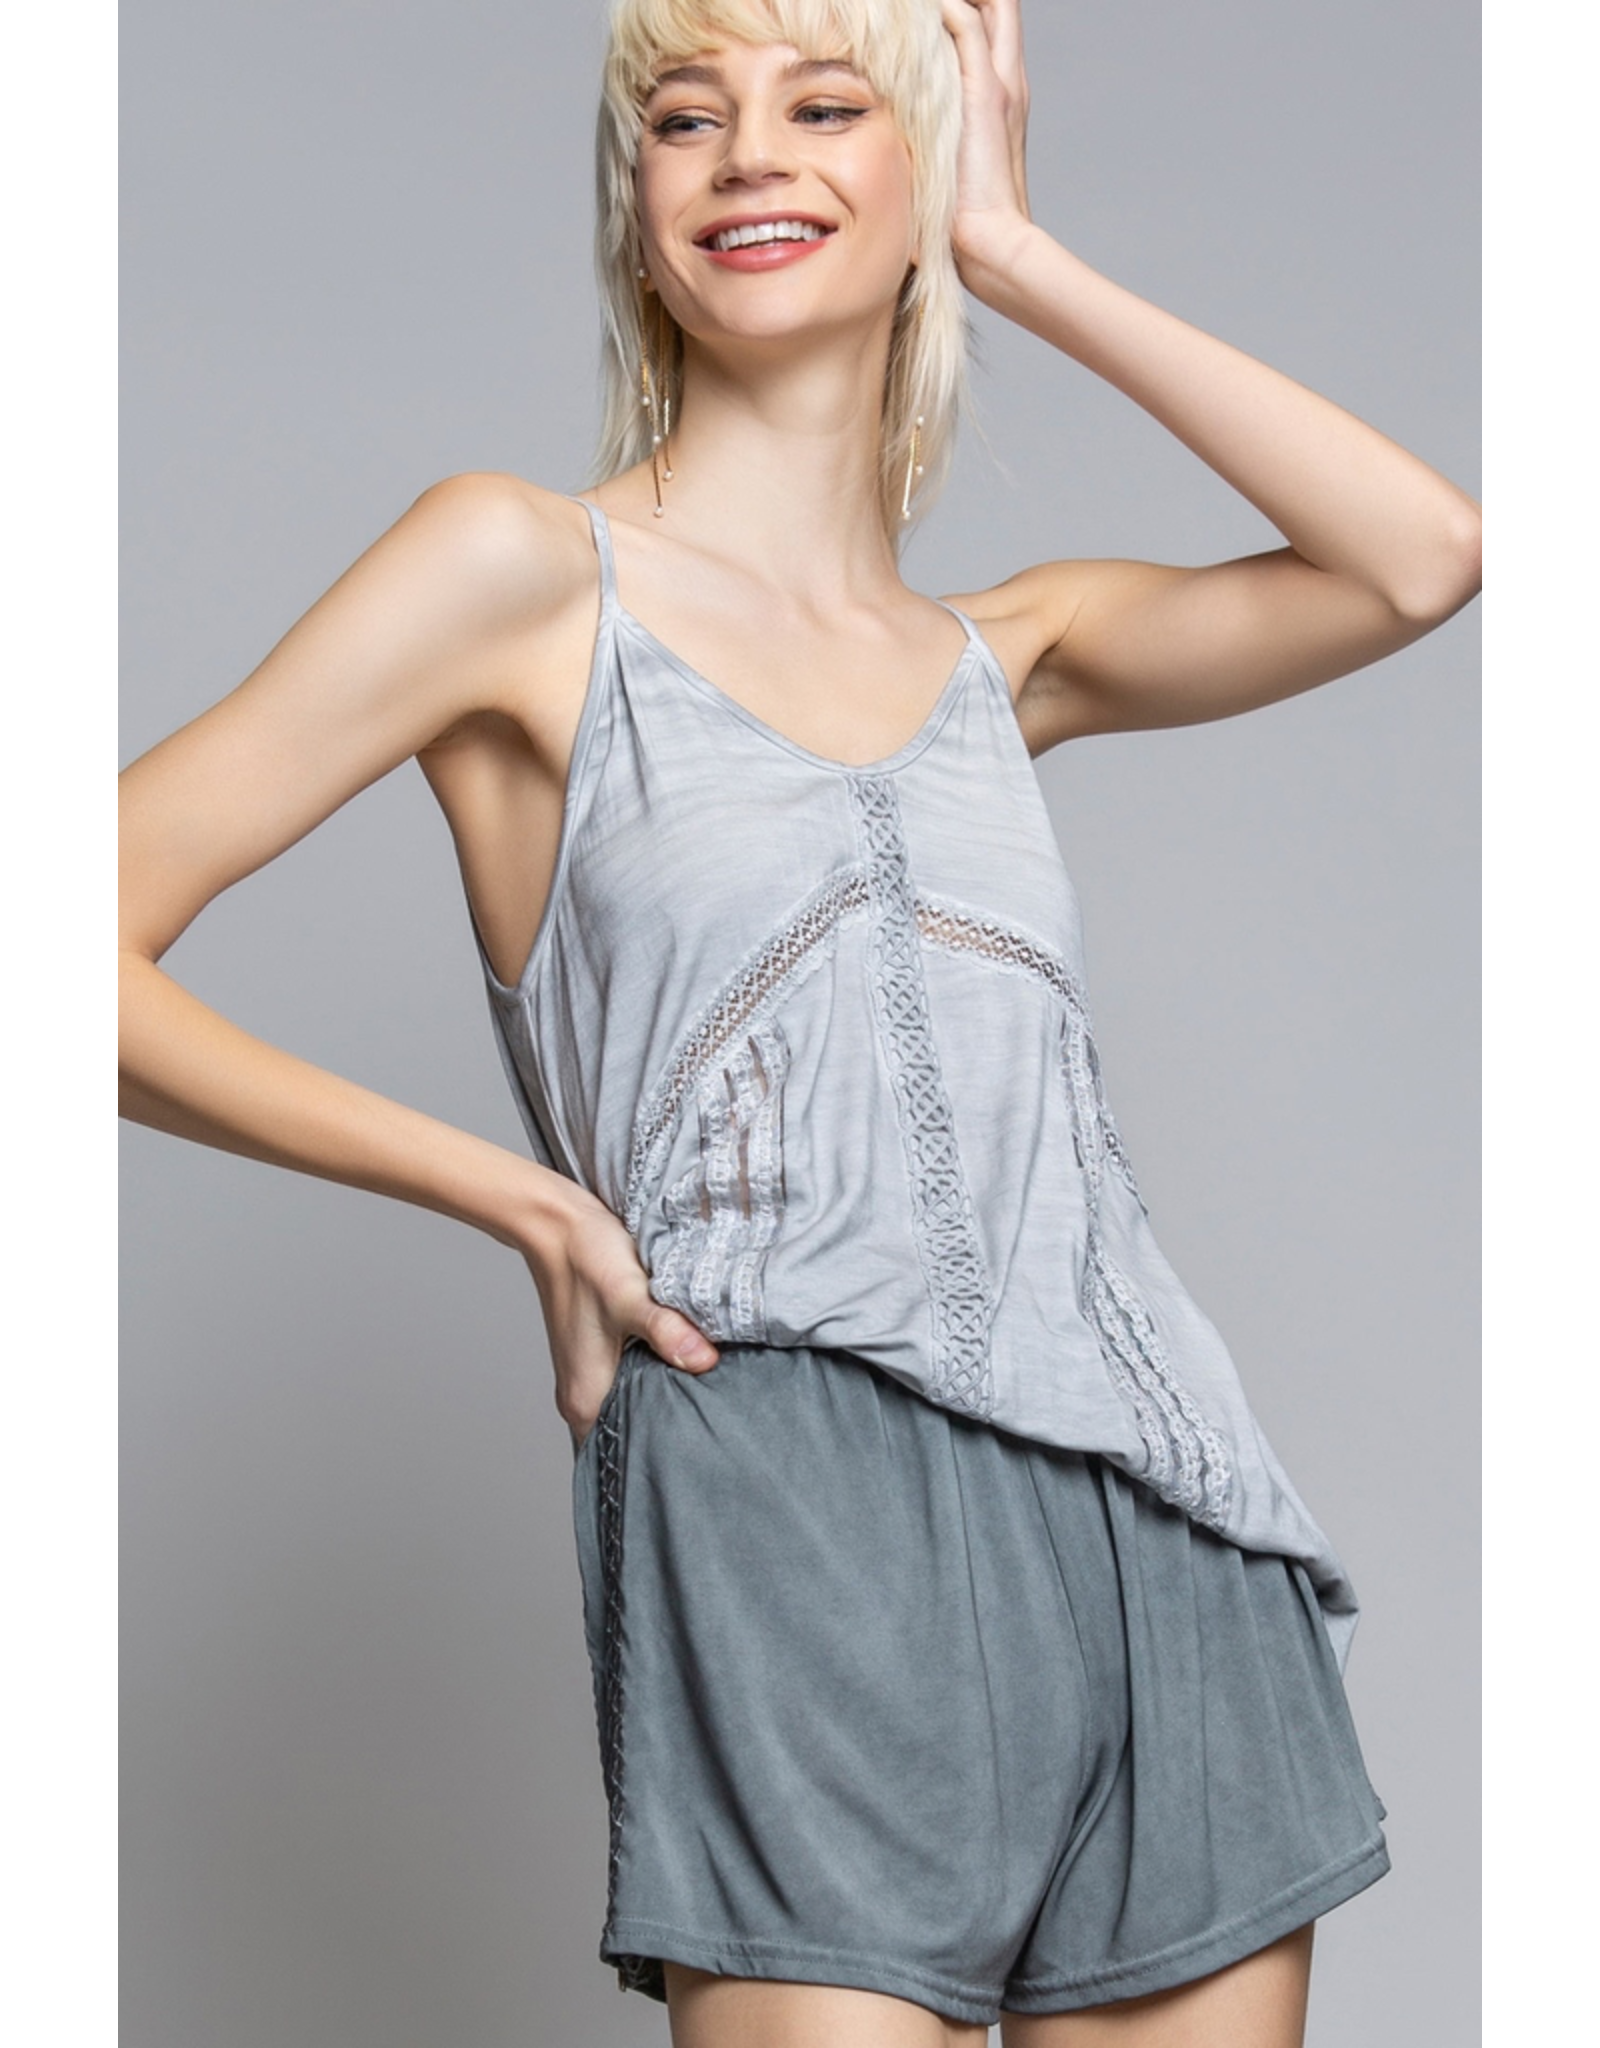 Pol Clothing V-Neck Tank Top with Lace Trim